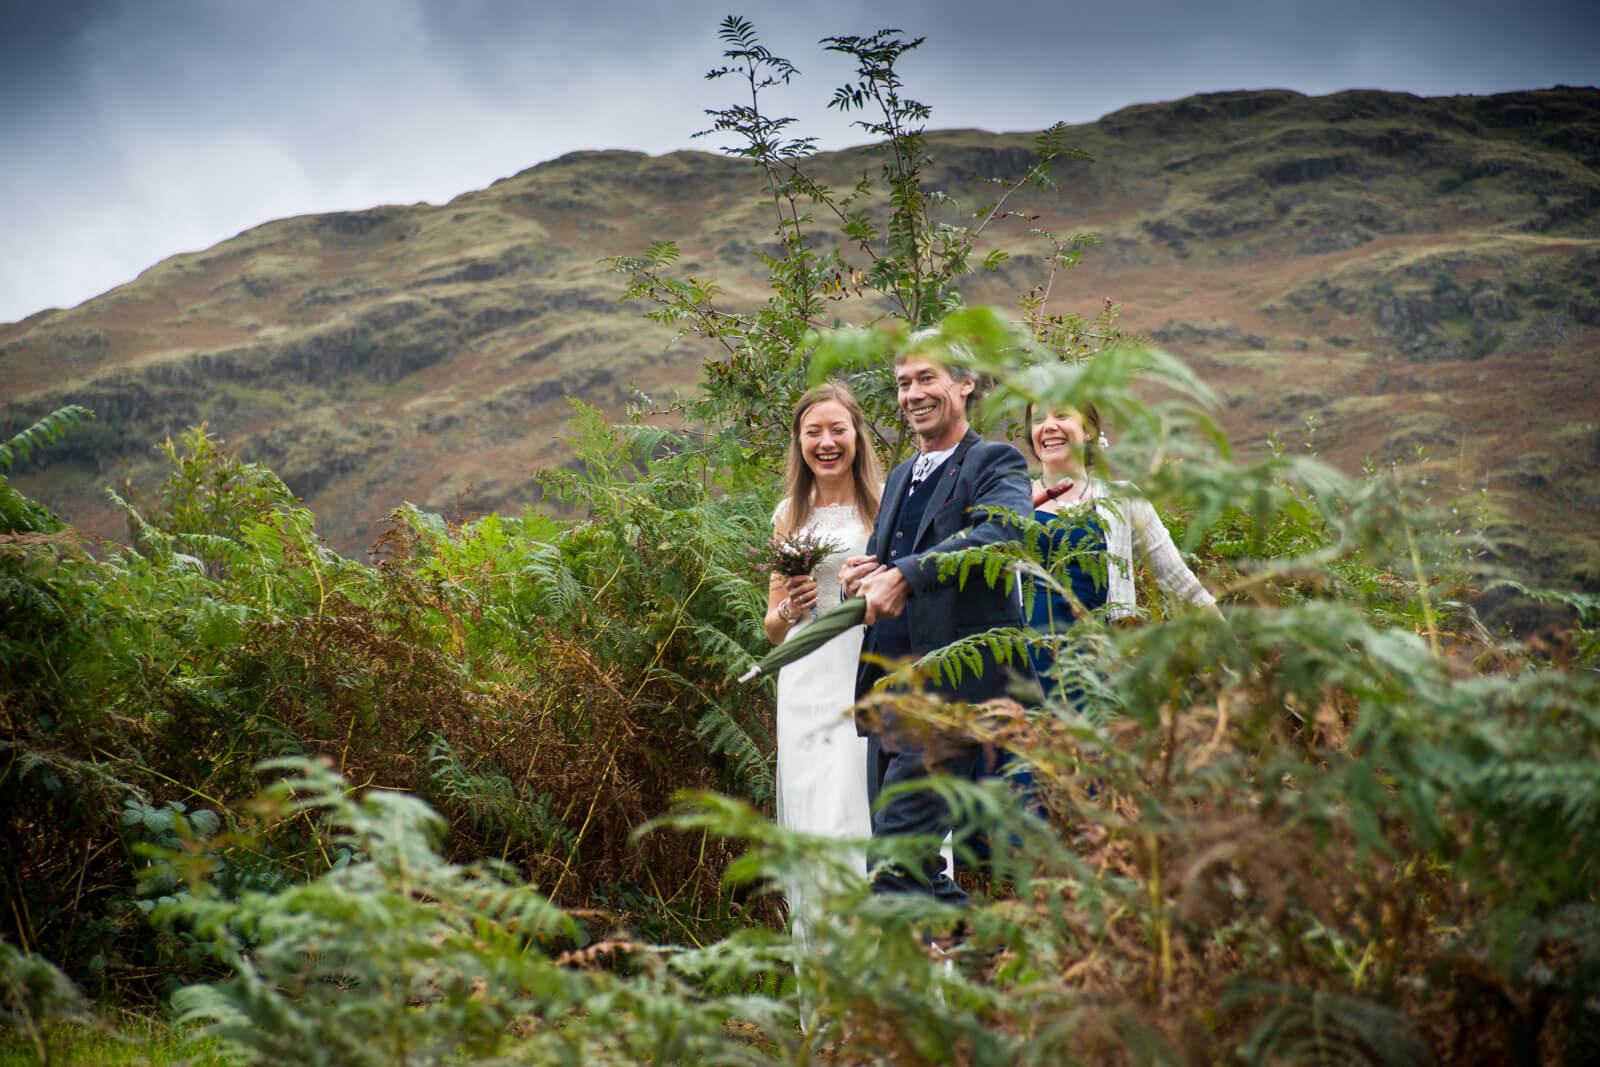 Bride and her father walk through the bracken on their way to the outdoor ceremony